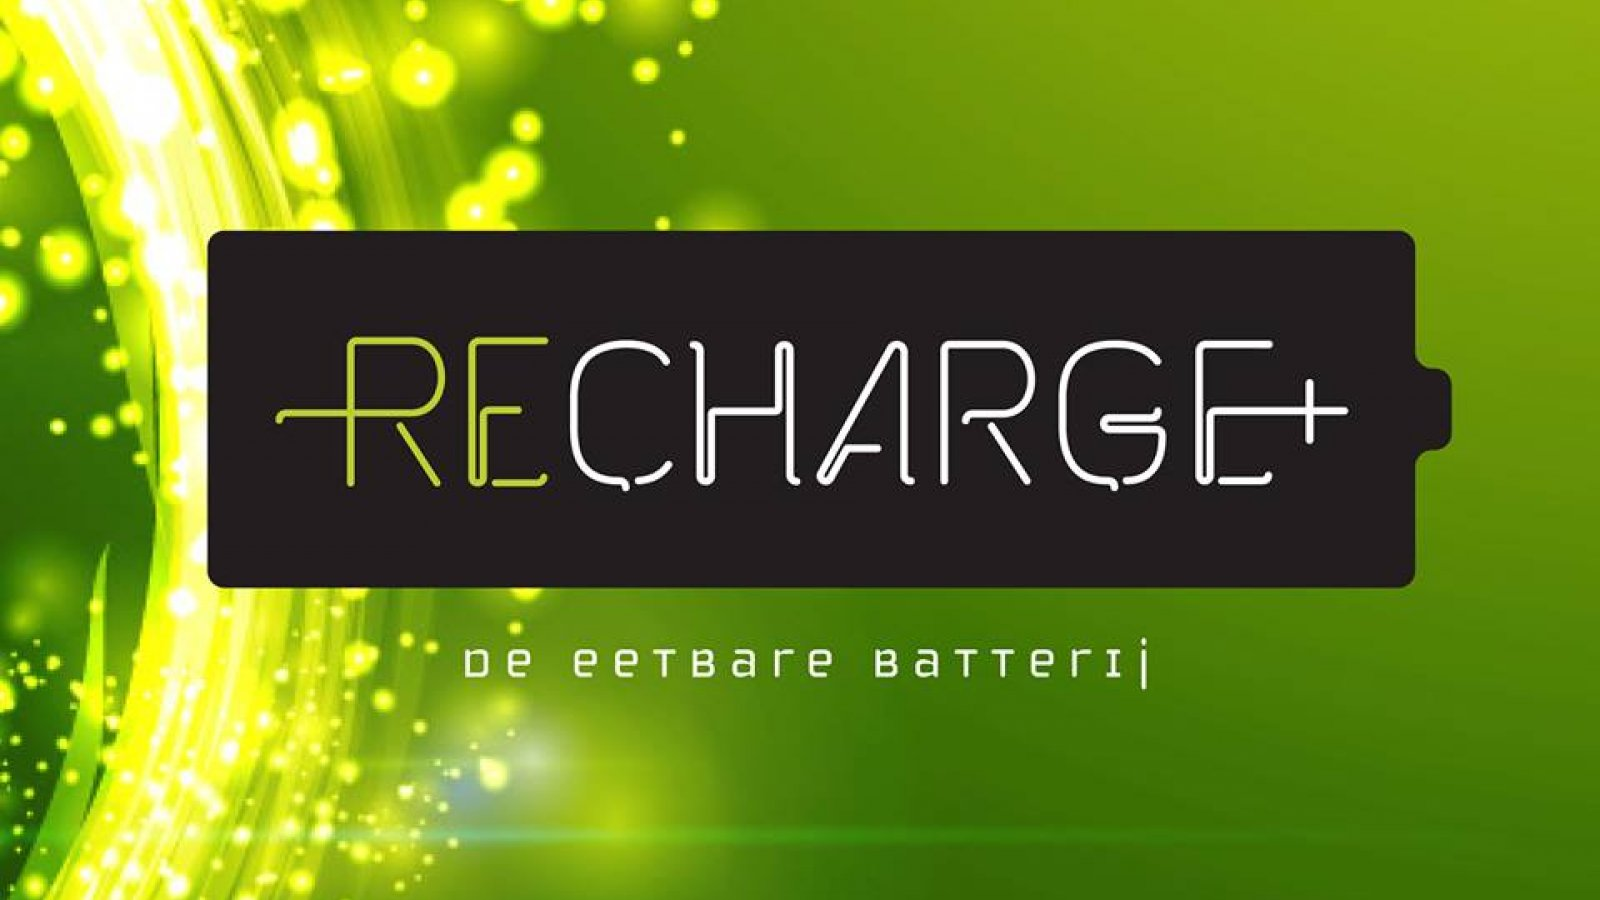 Recharge yourself